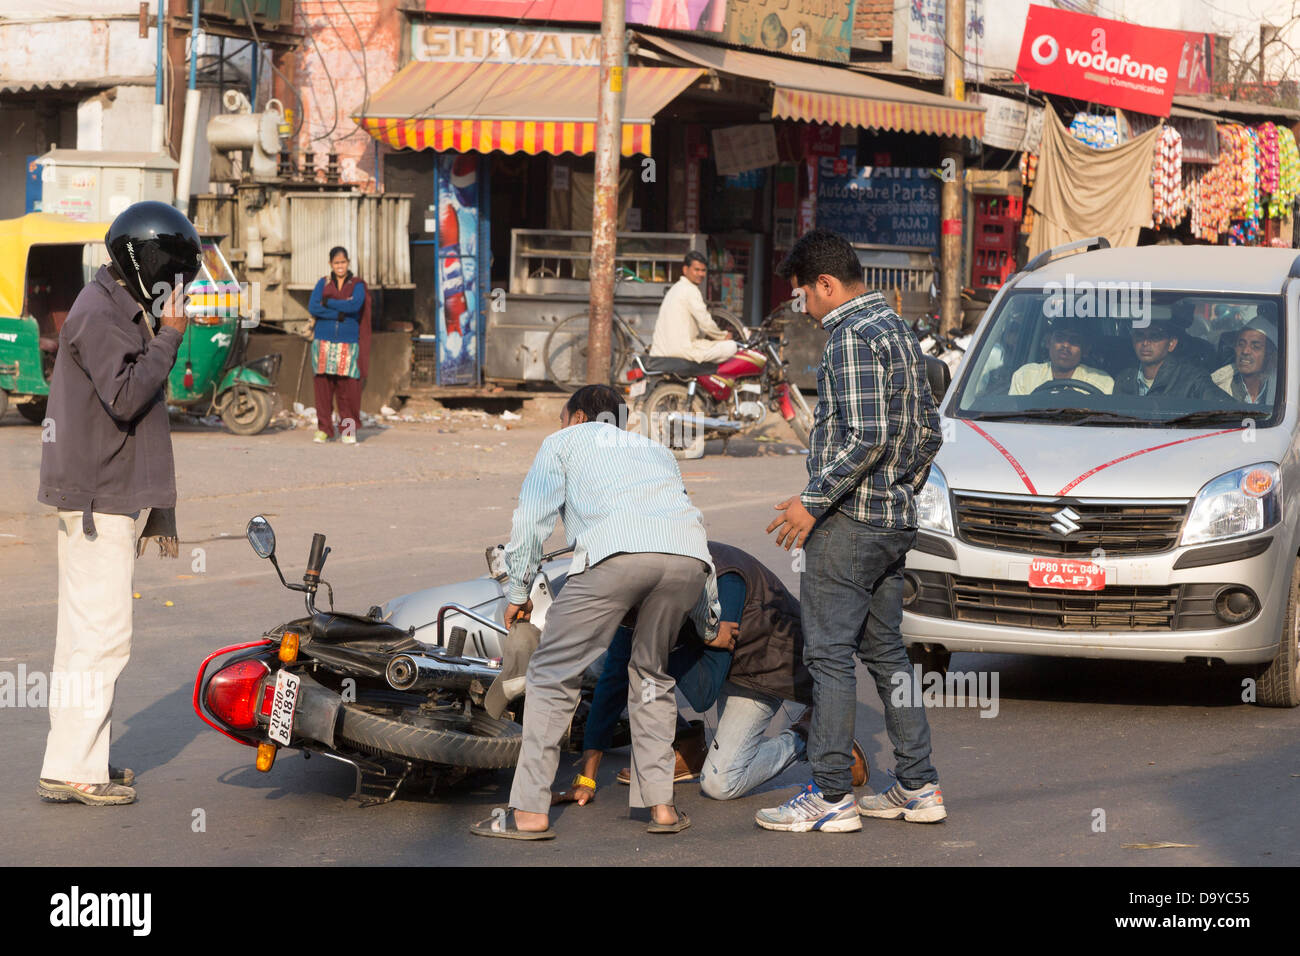 india road accident stock photos & india road accident stock images